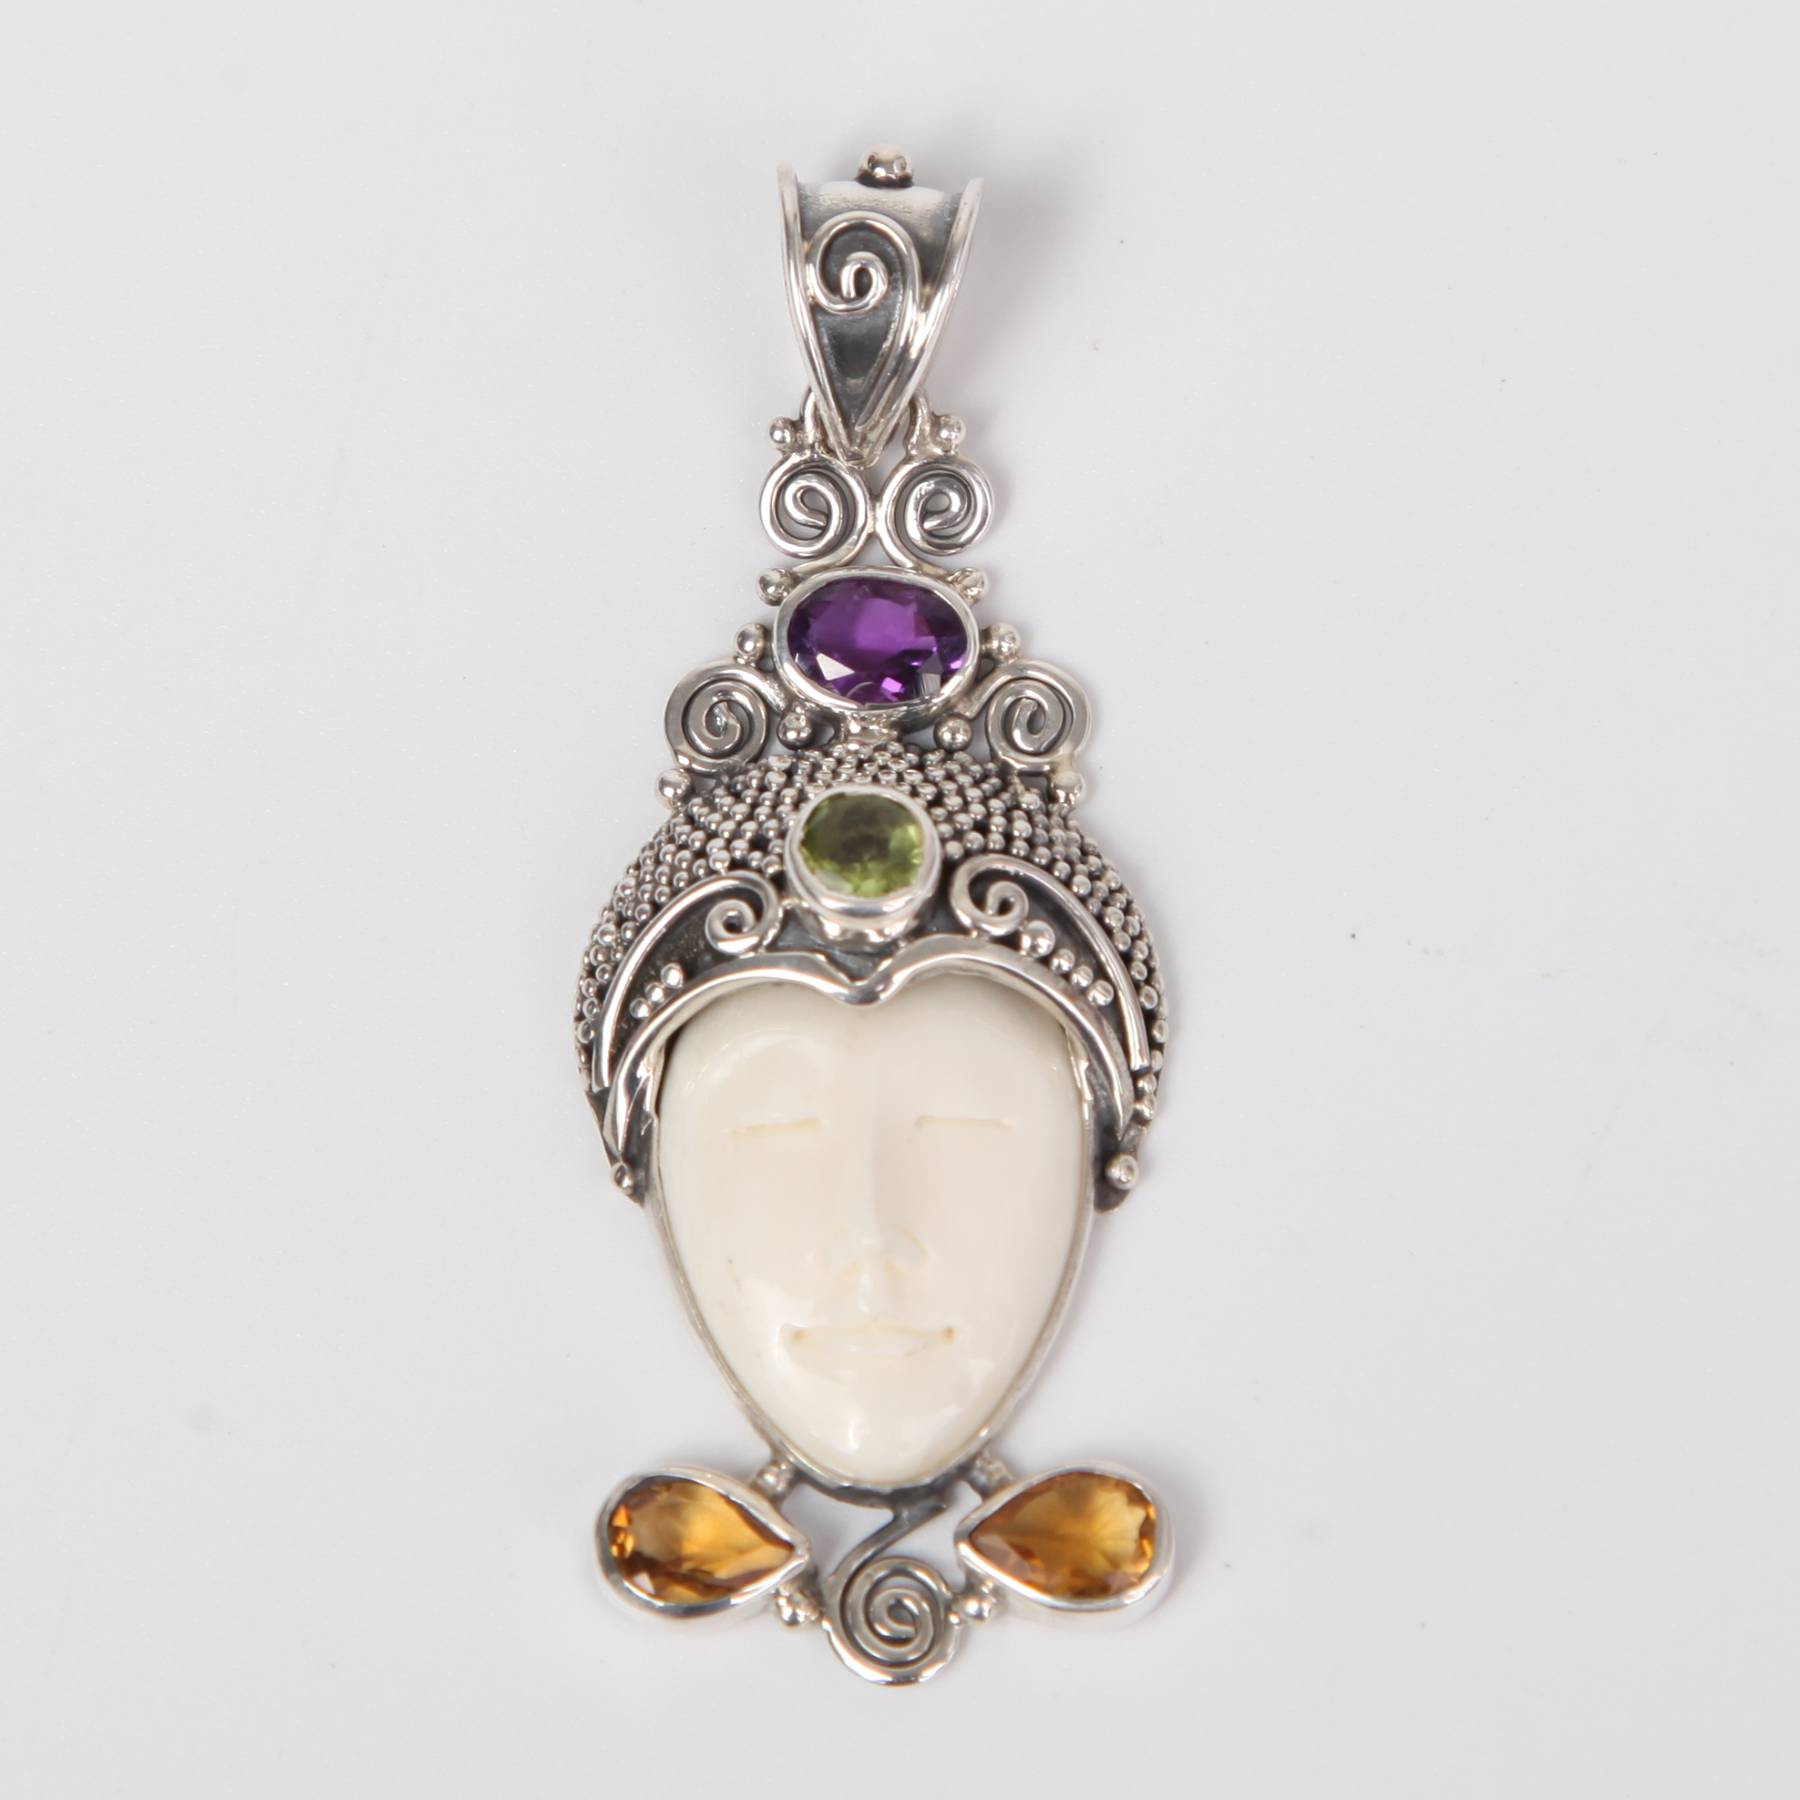 Buffalo Bone (Moon face) Sterling Silver Pendant with Citrine, Amethyst and Peridot